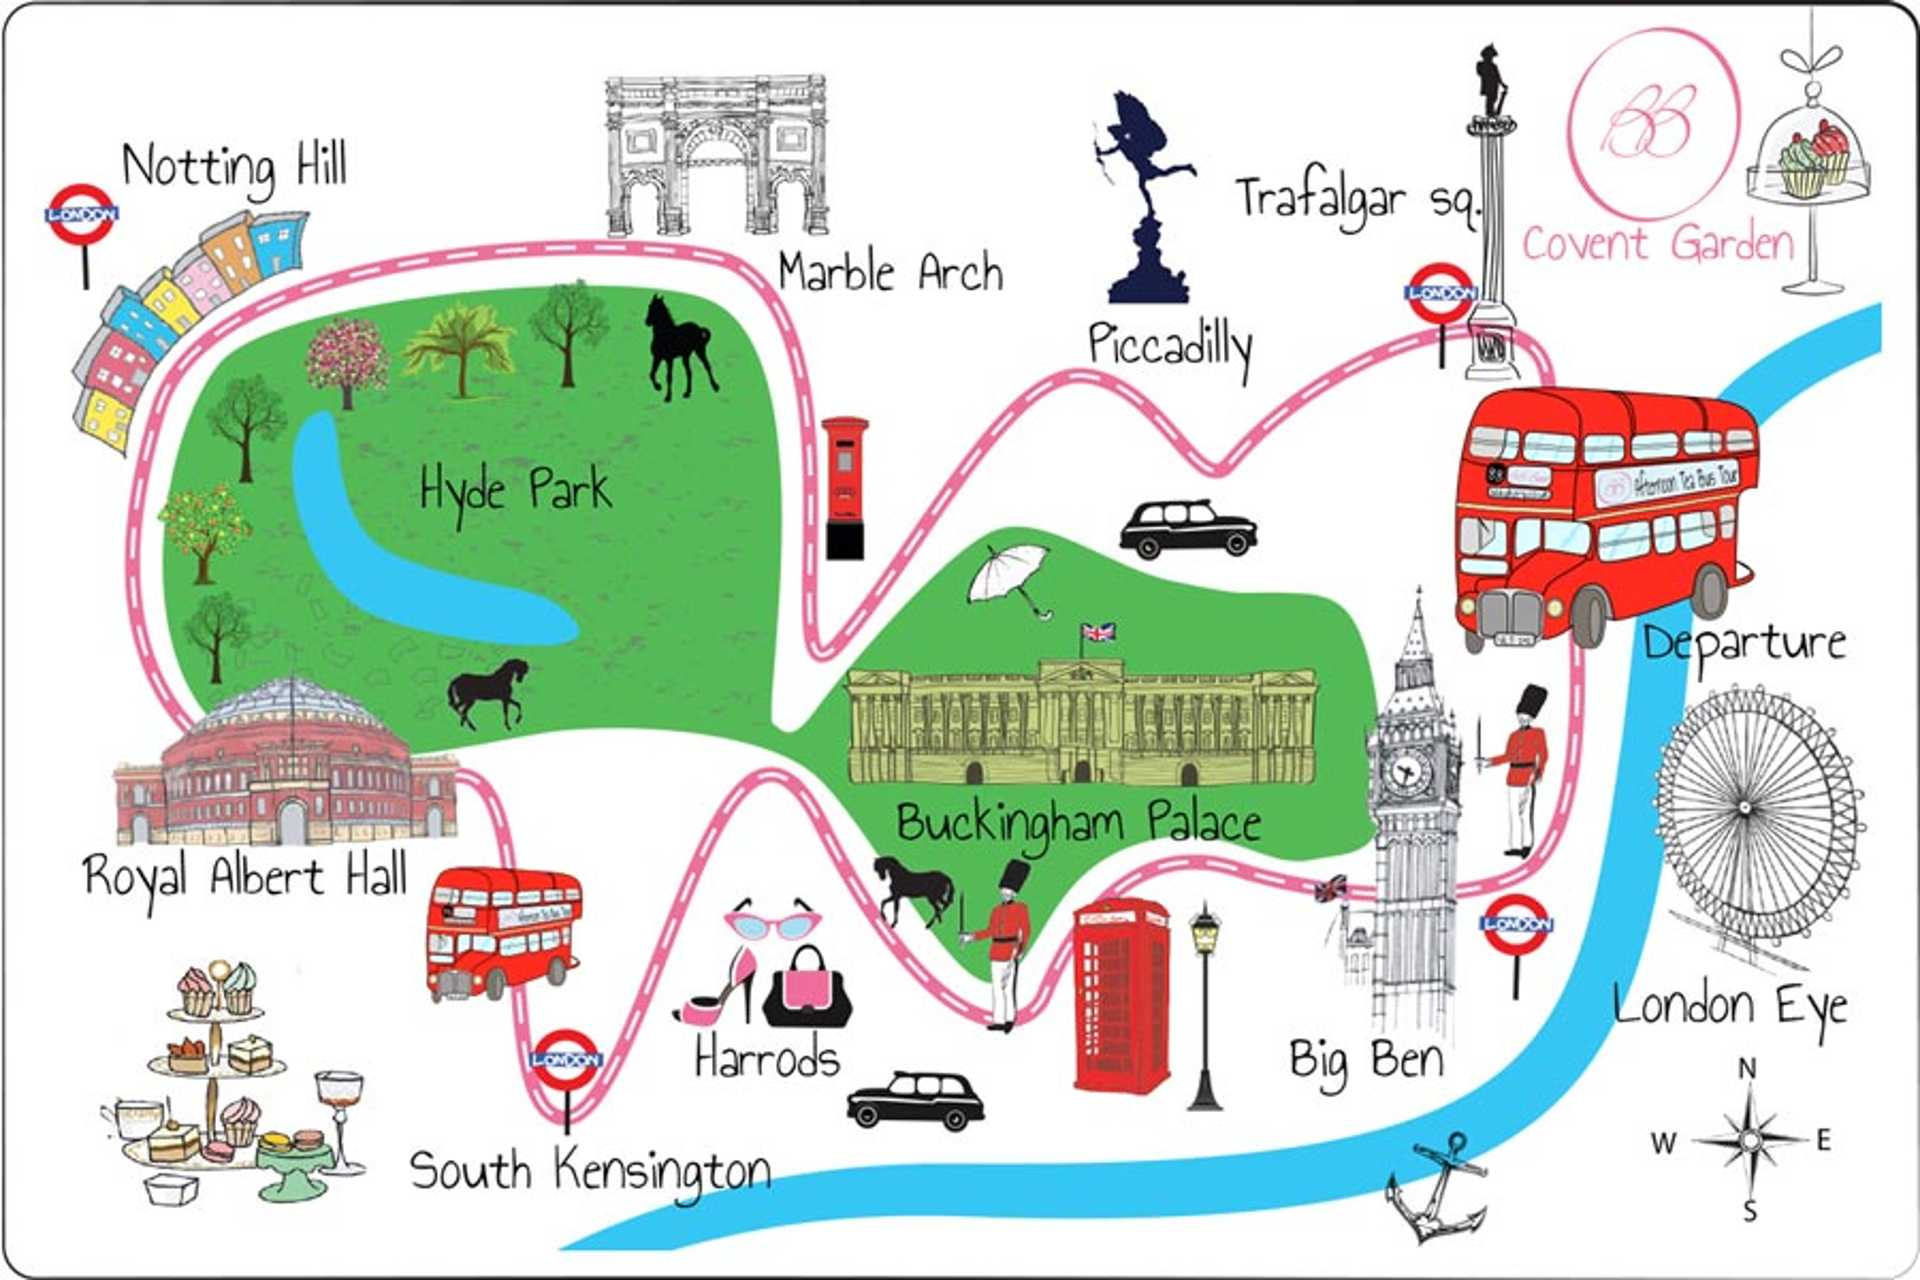 bb-routemaster-route-map-halal-afternoon-tea